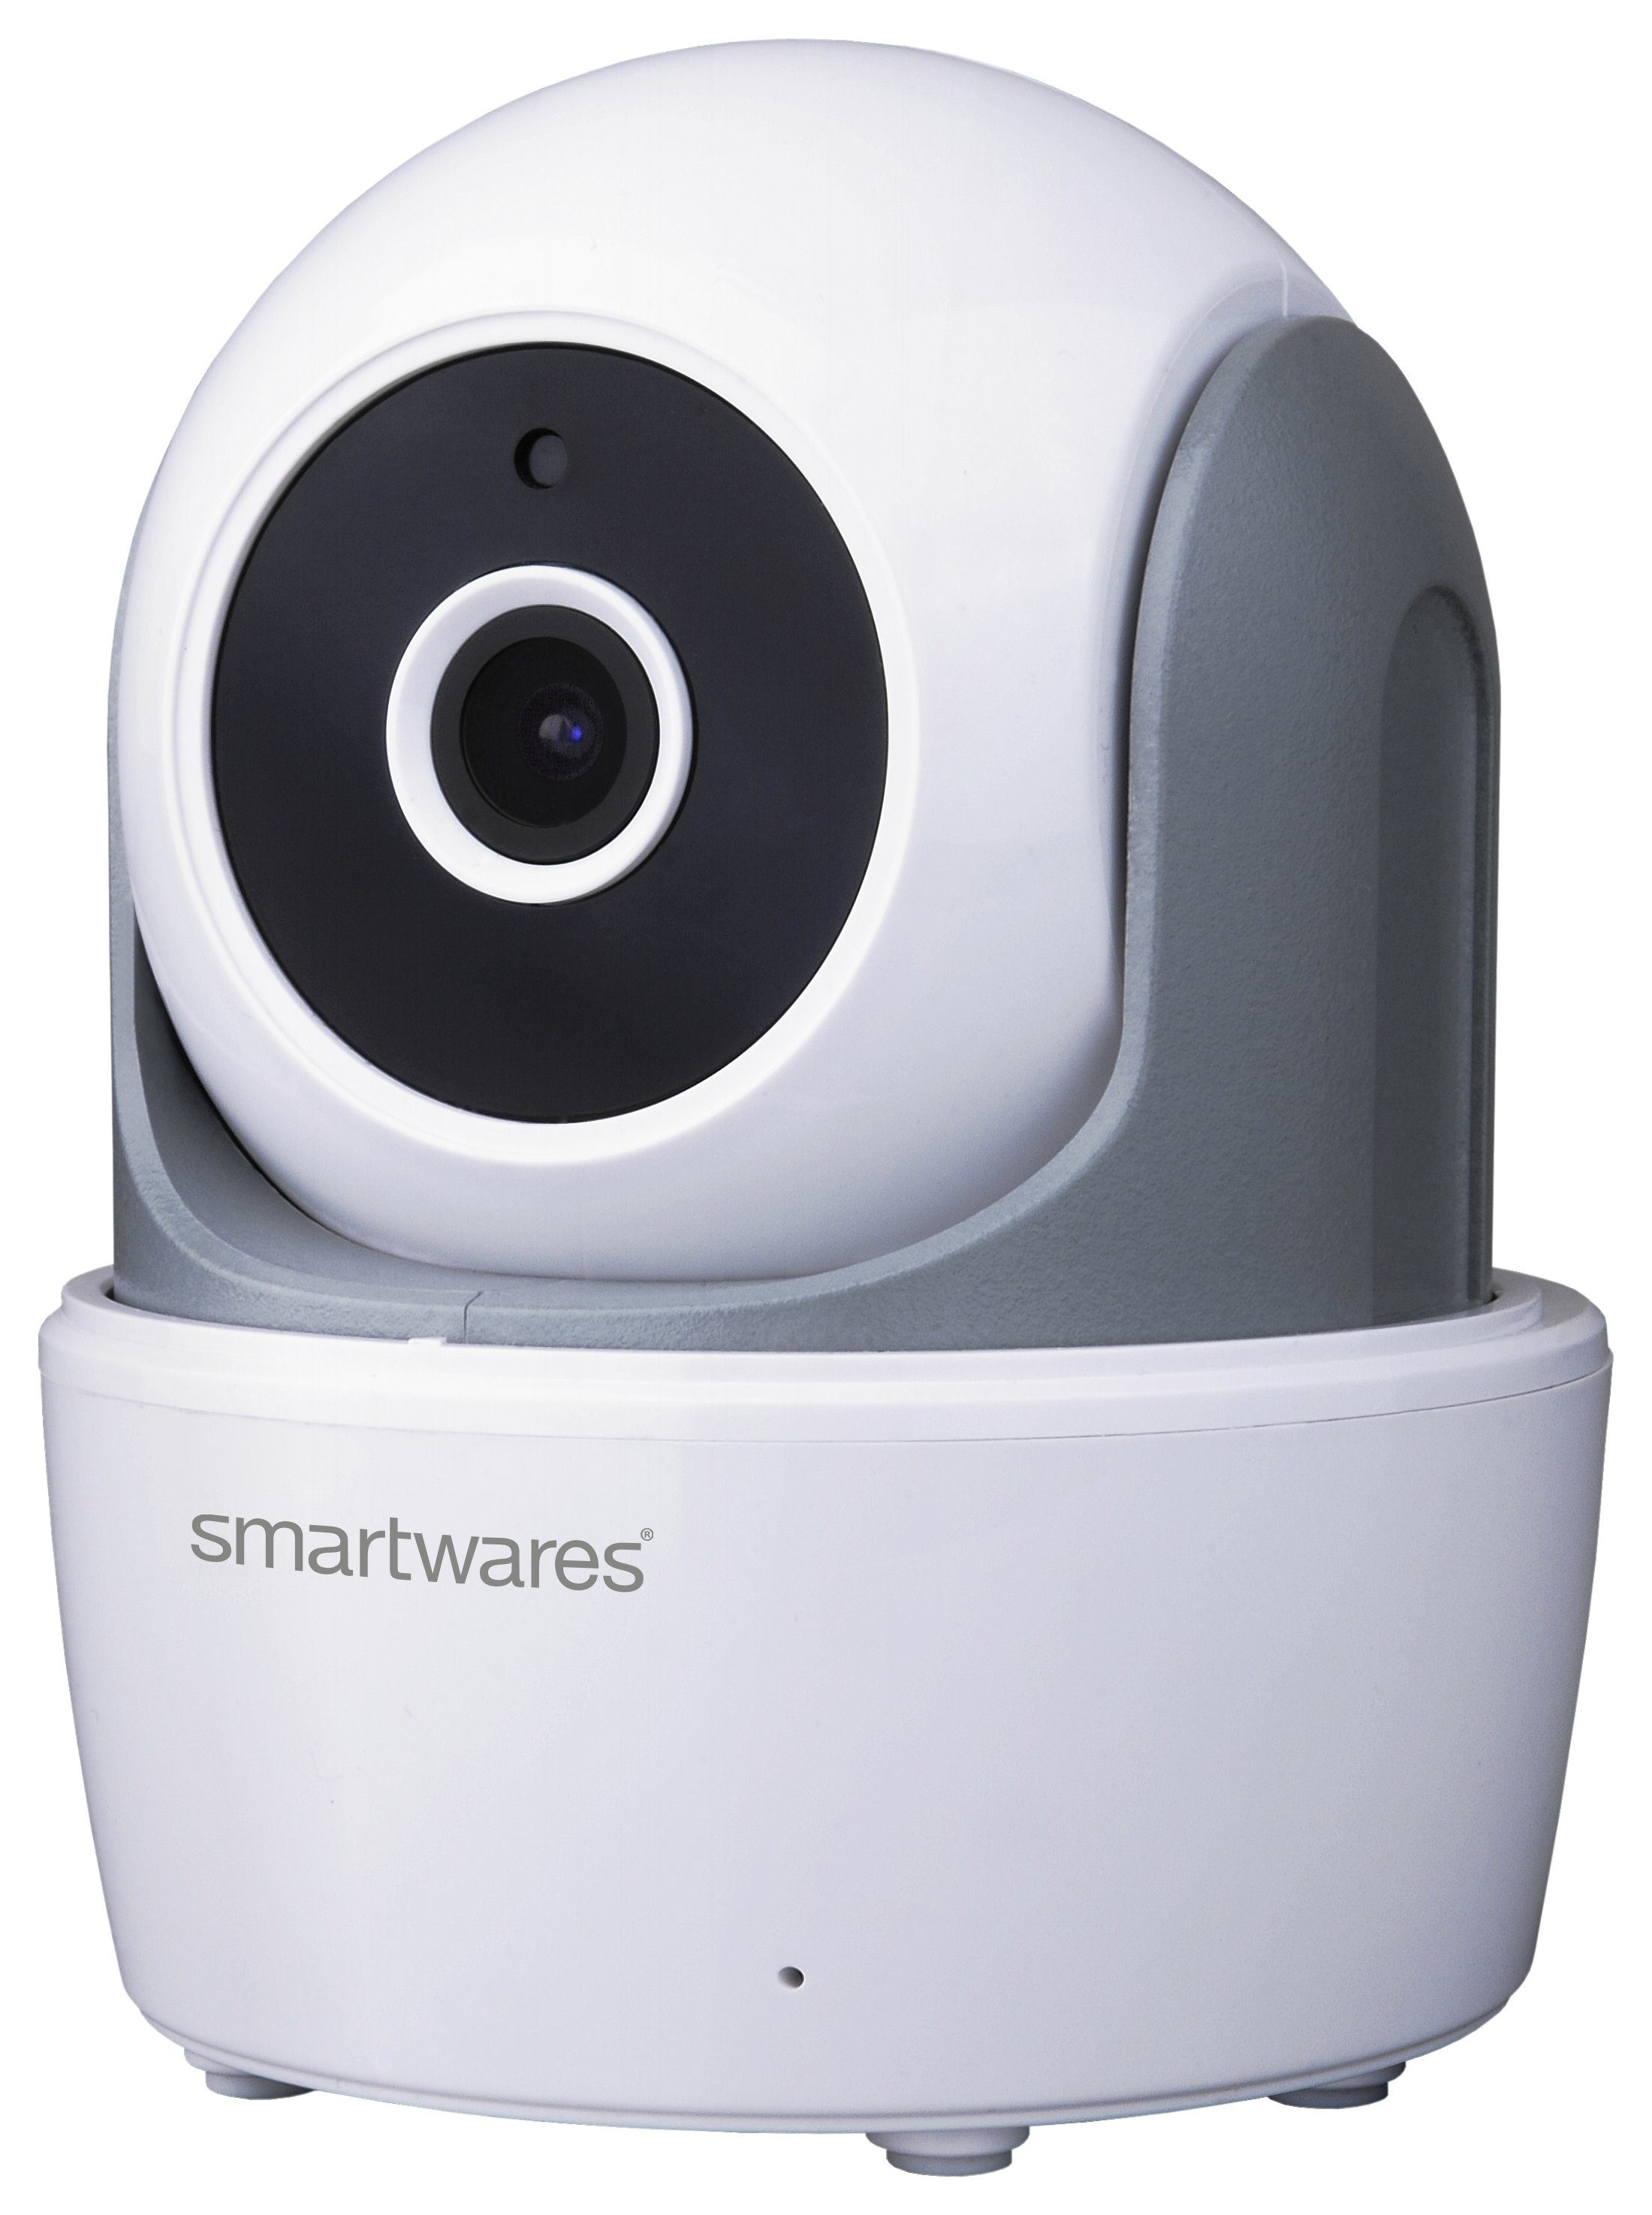 smartwares Smart Home Sicherheit & Komfort »WiFi IP-Kamera Pan/ Tilt«